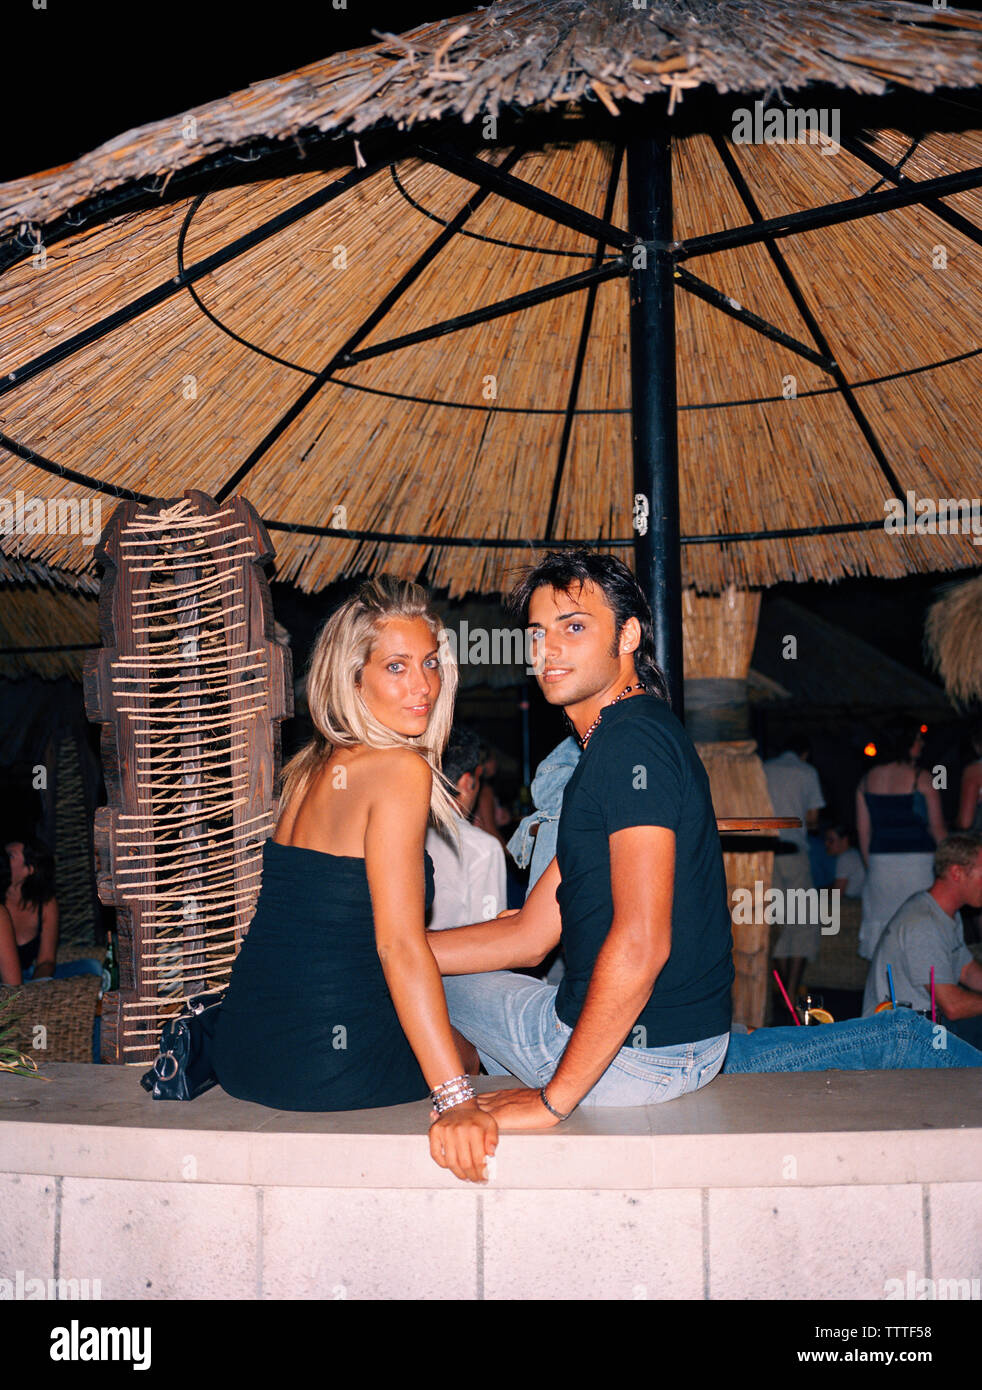 CROATIA, Bol, Brac, Dalmatian Coast, smiling young couple sitting together in Varadero club - Stock Image